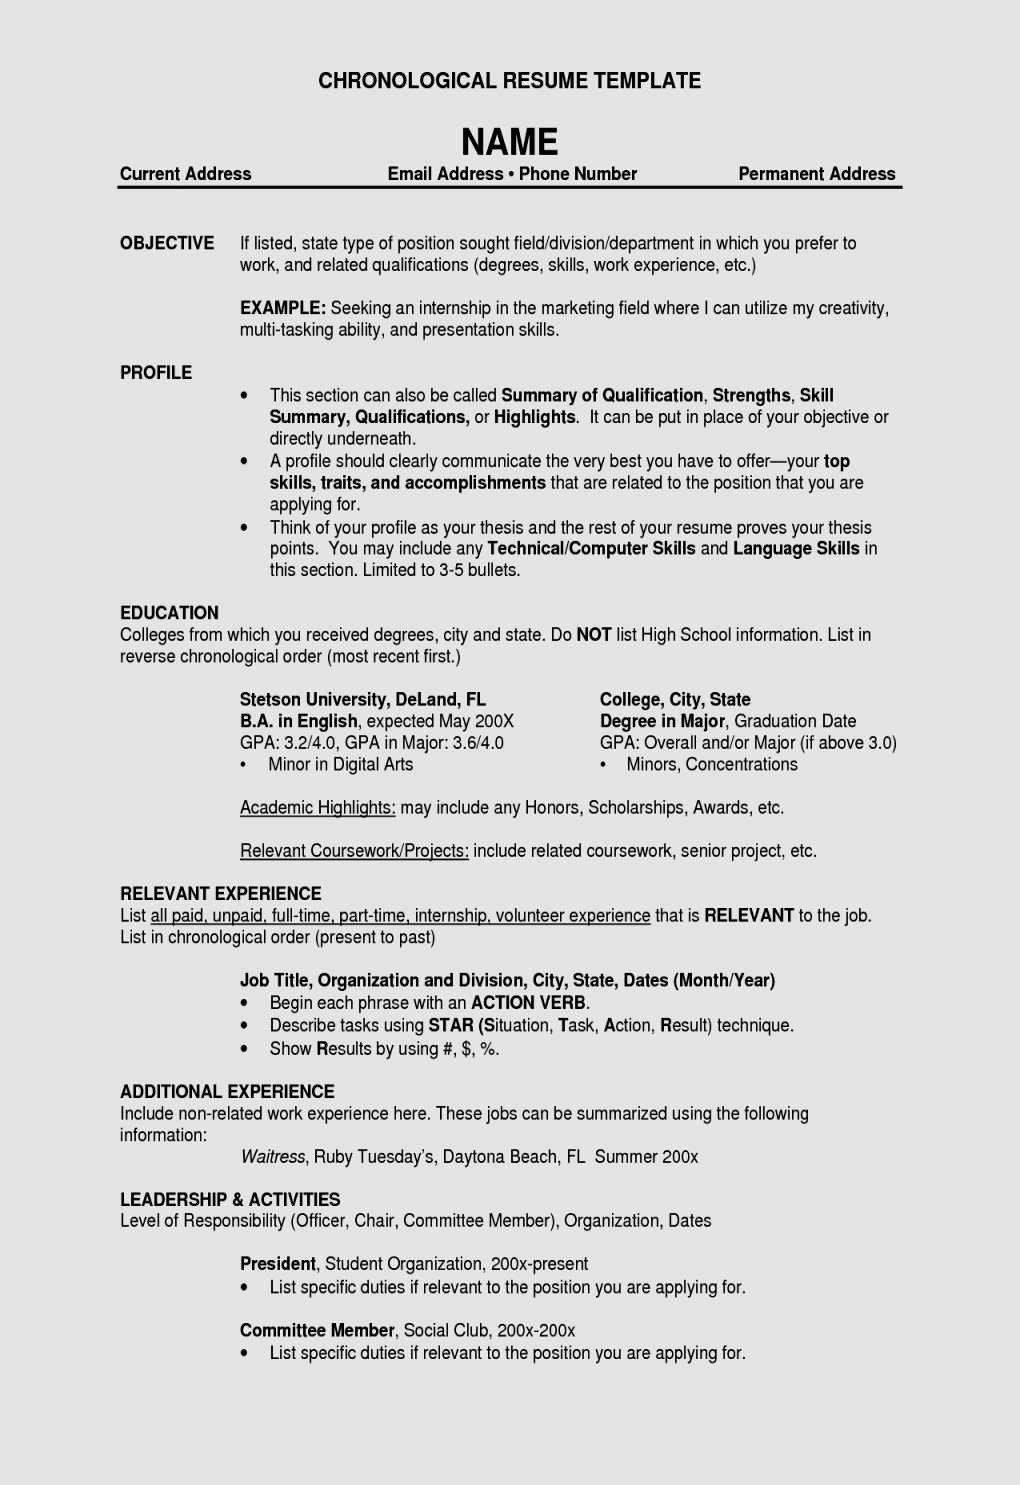 Honors And Awards Resume Examples Beautiful How To Make Resume Template Marketing Free Resume Templates Resume Examples Student Resume Dental Hygiene Resume